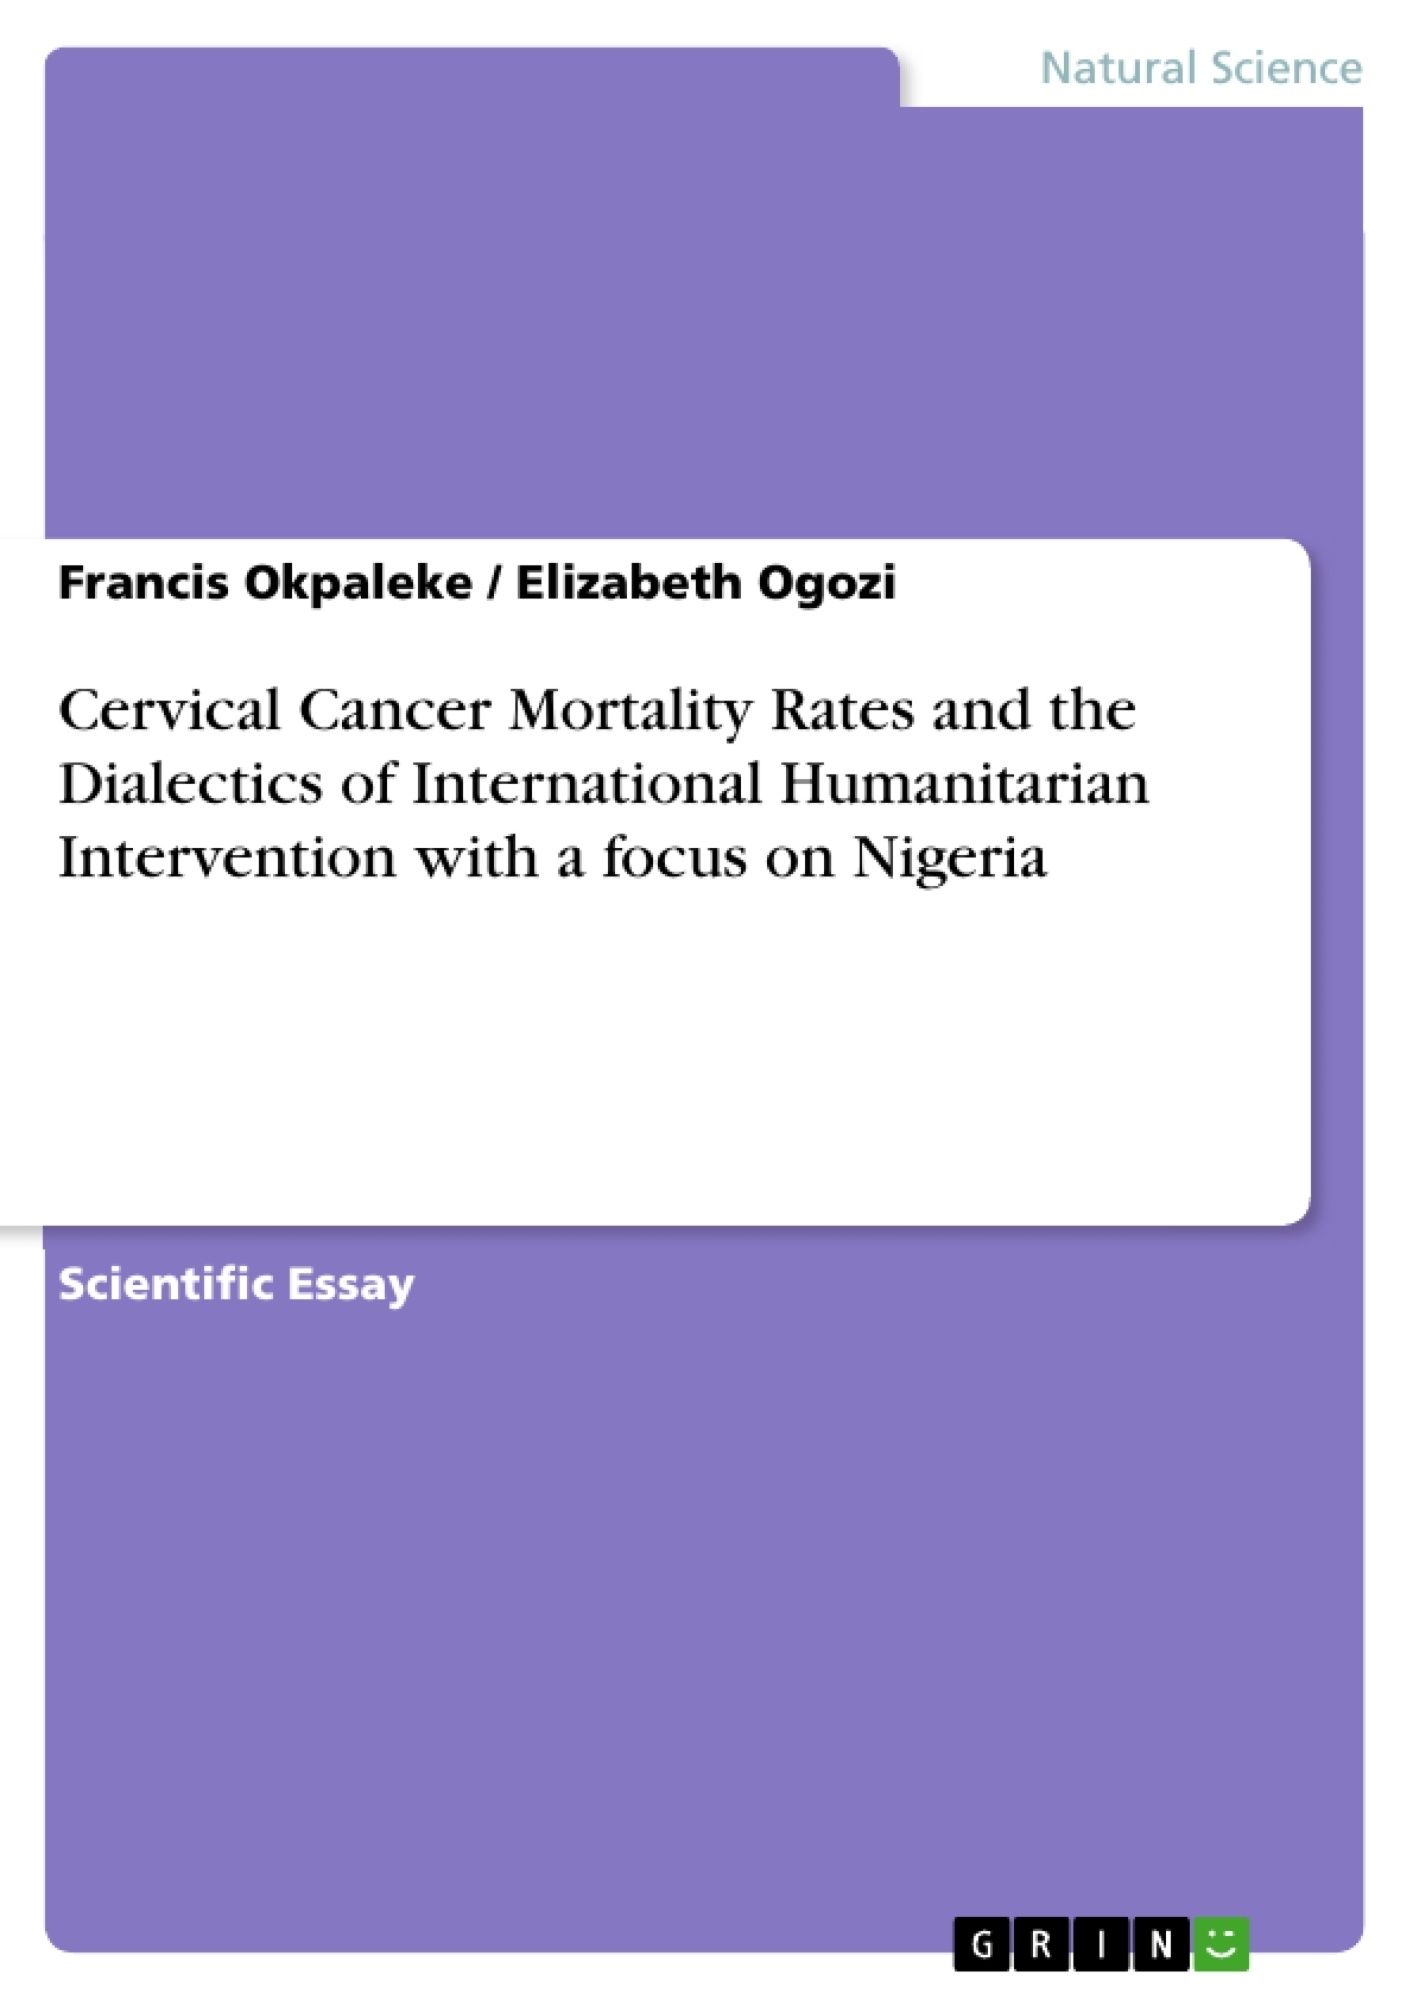 Title: Cervical Cancer Mortality Rates and the Dialectics of International Humanitarian Intervention with a focus on Nigeria